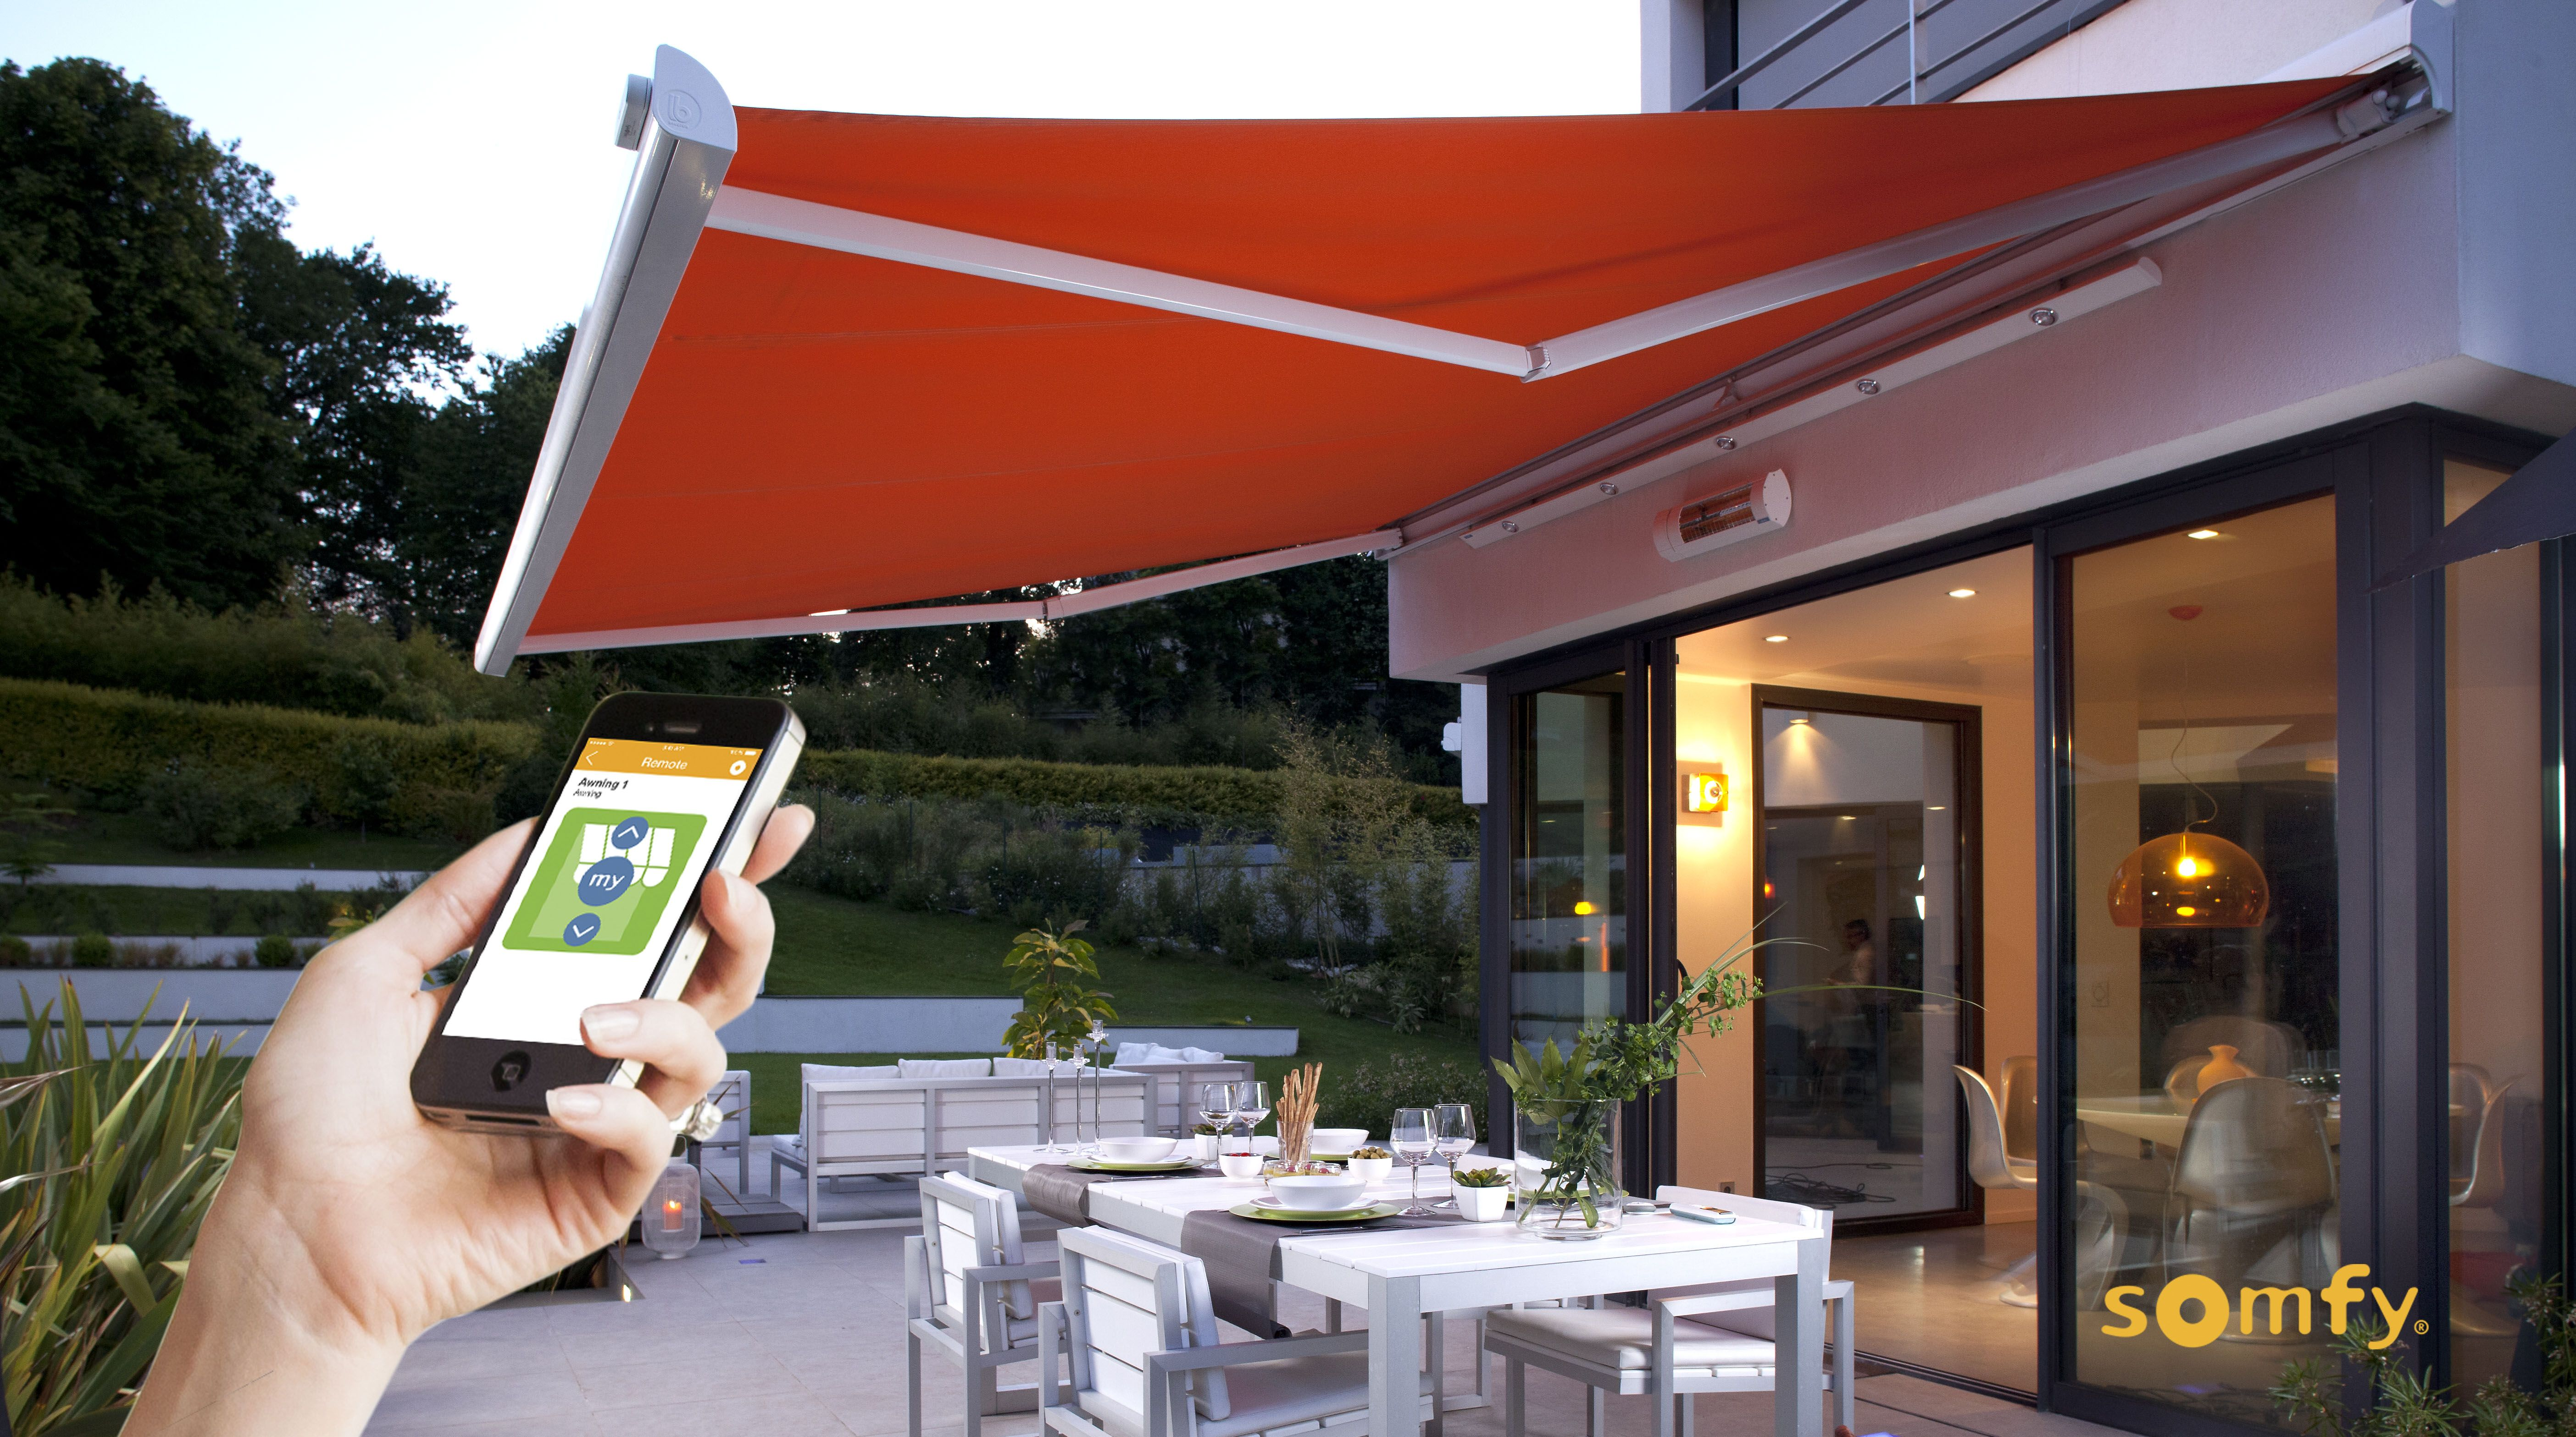 Somfy Electric Motors Remote Controls And Automation For Rolling Shutters Awnings Patio Blinds Indoor Blinds Sh Patio Shade Exterior Shades Patio Awning